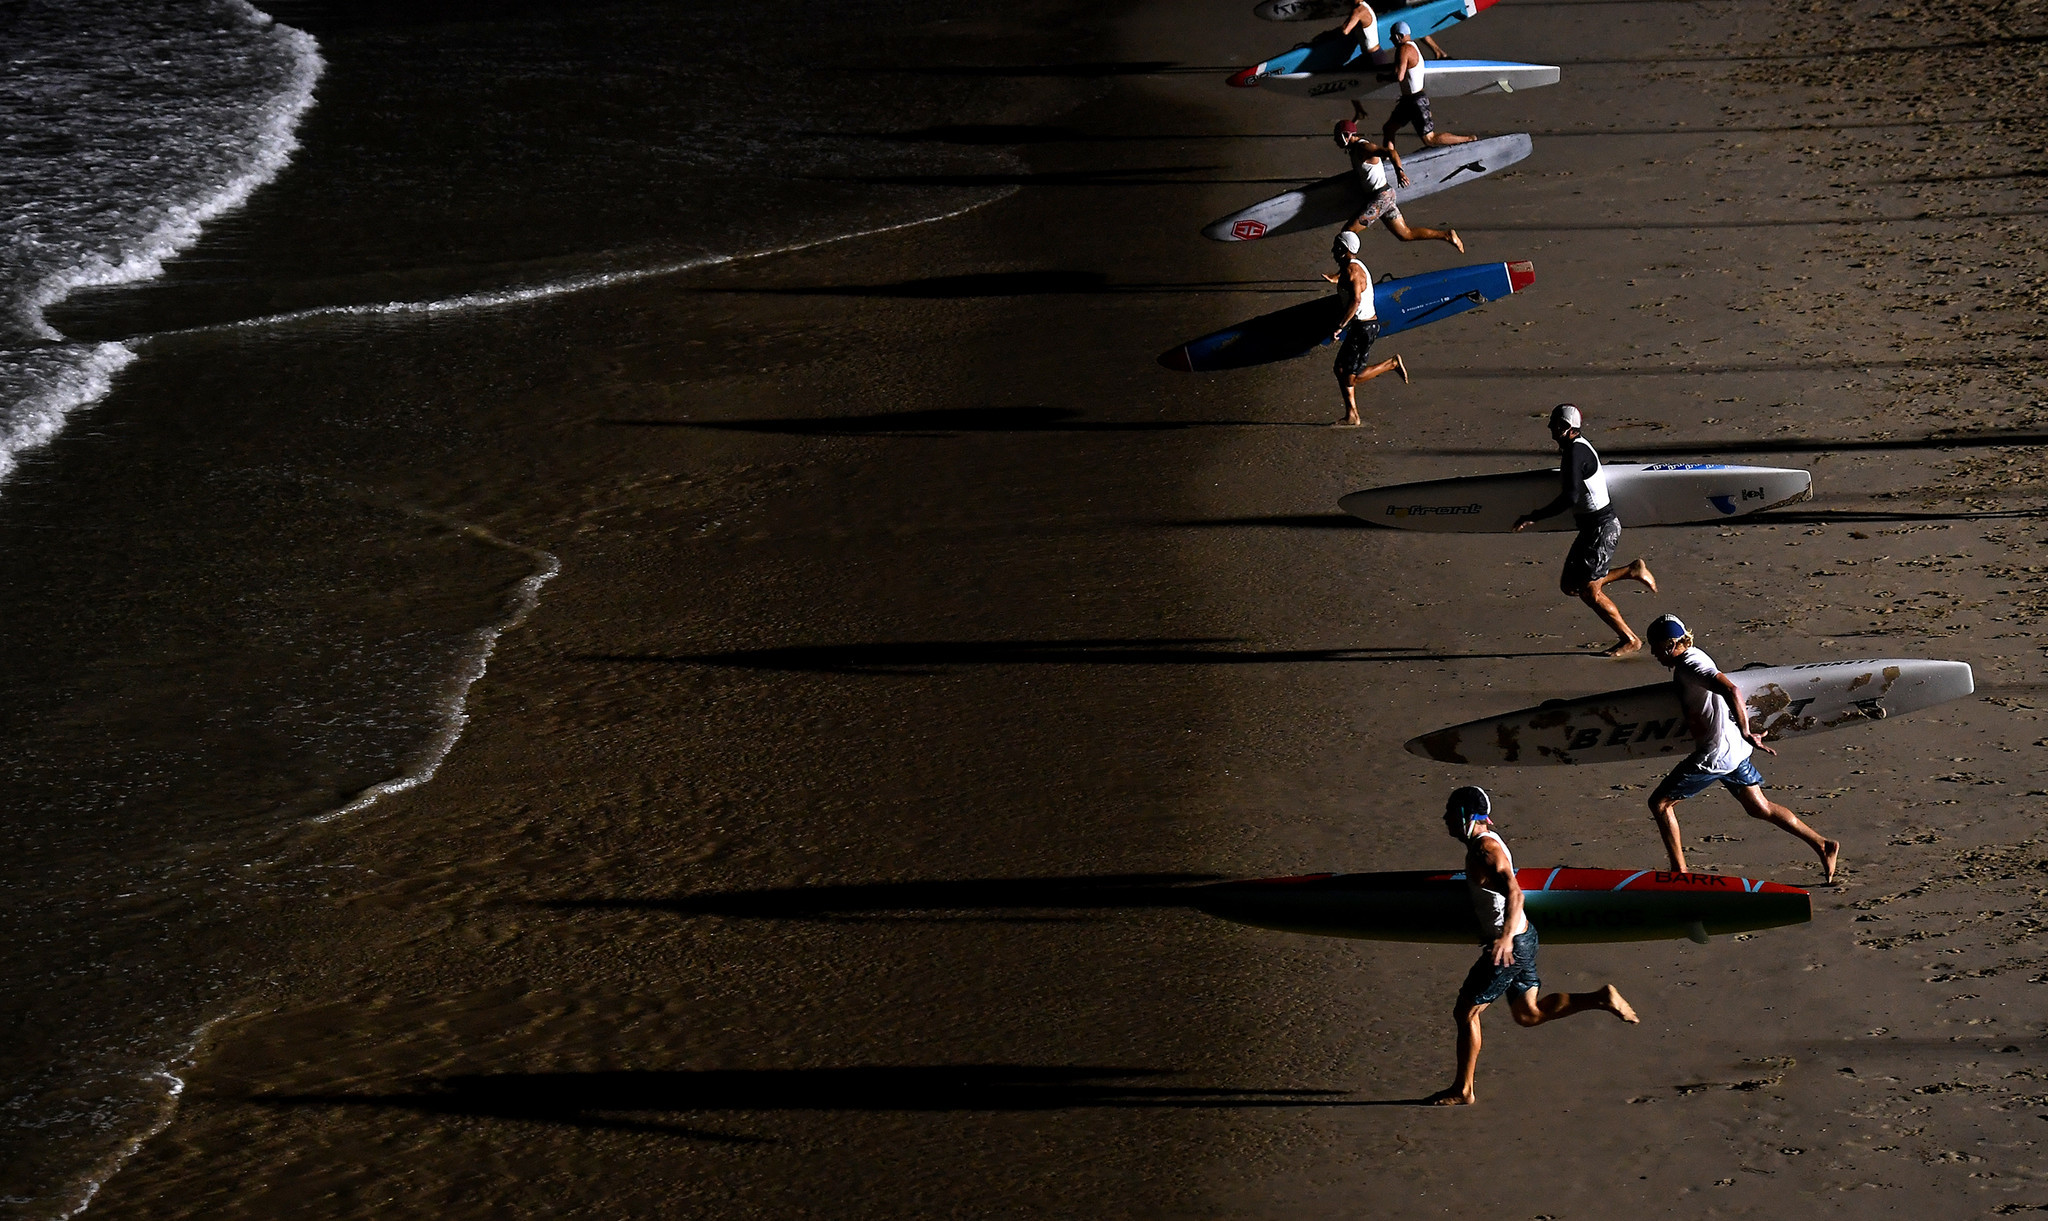 HERMOSA BEACH, CALIFORNIA AUGUST 3, 2018-Lifeguards compete during the International Surf Festival i